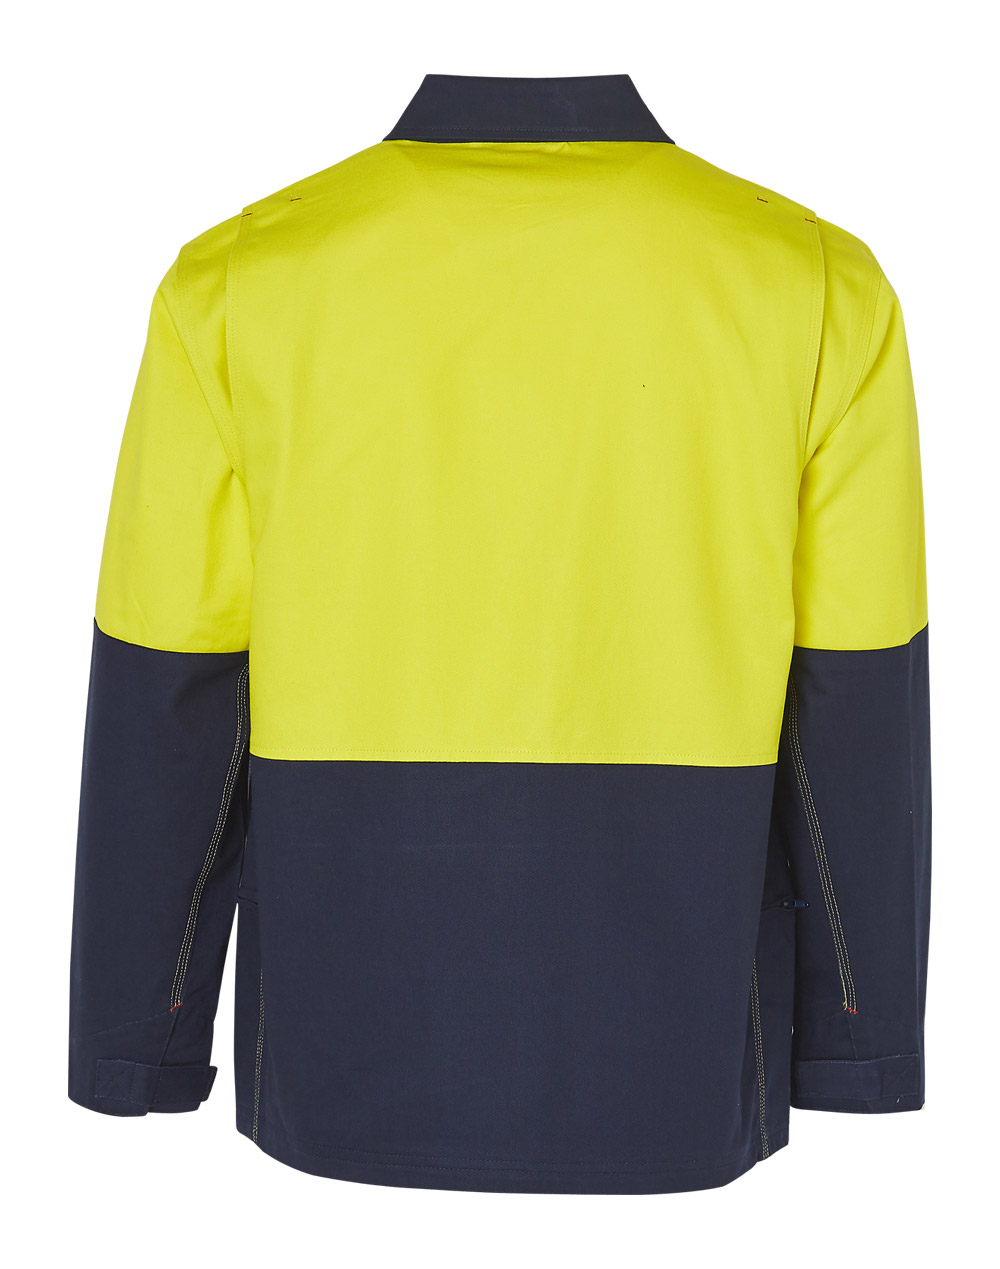 https://s3-ap-southeast-1.amazonaws.com/ws-imgs/WORKWEAR/SW45_YellowNavy_Back.jpg